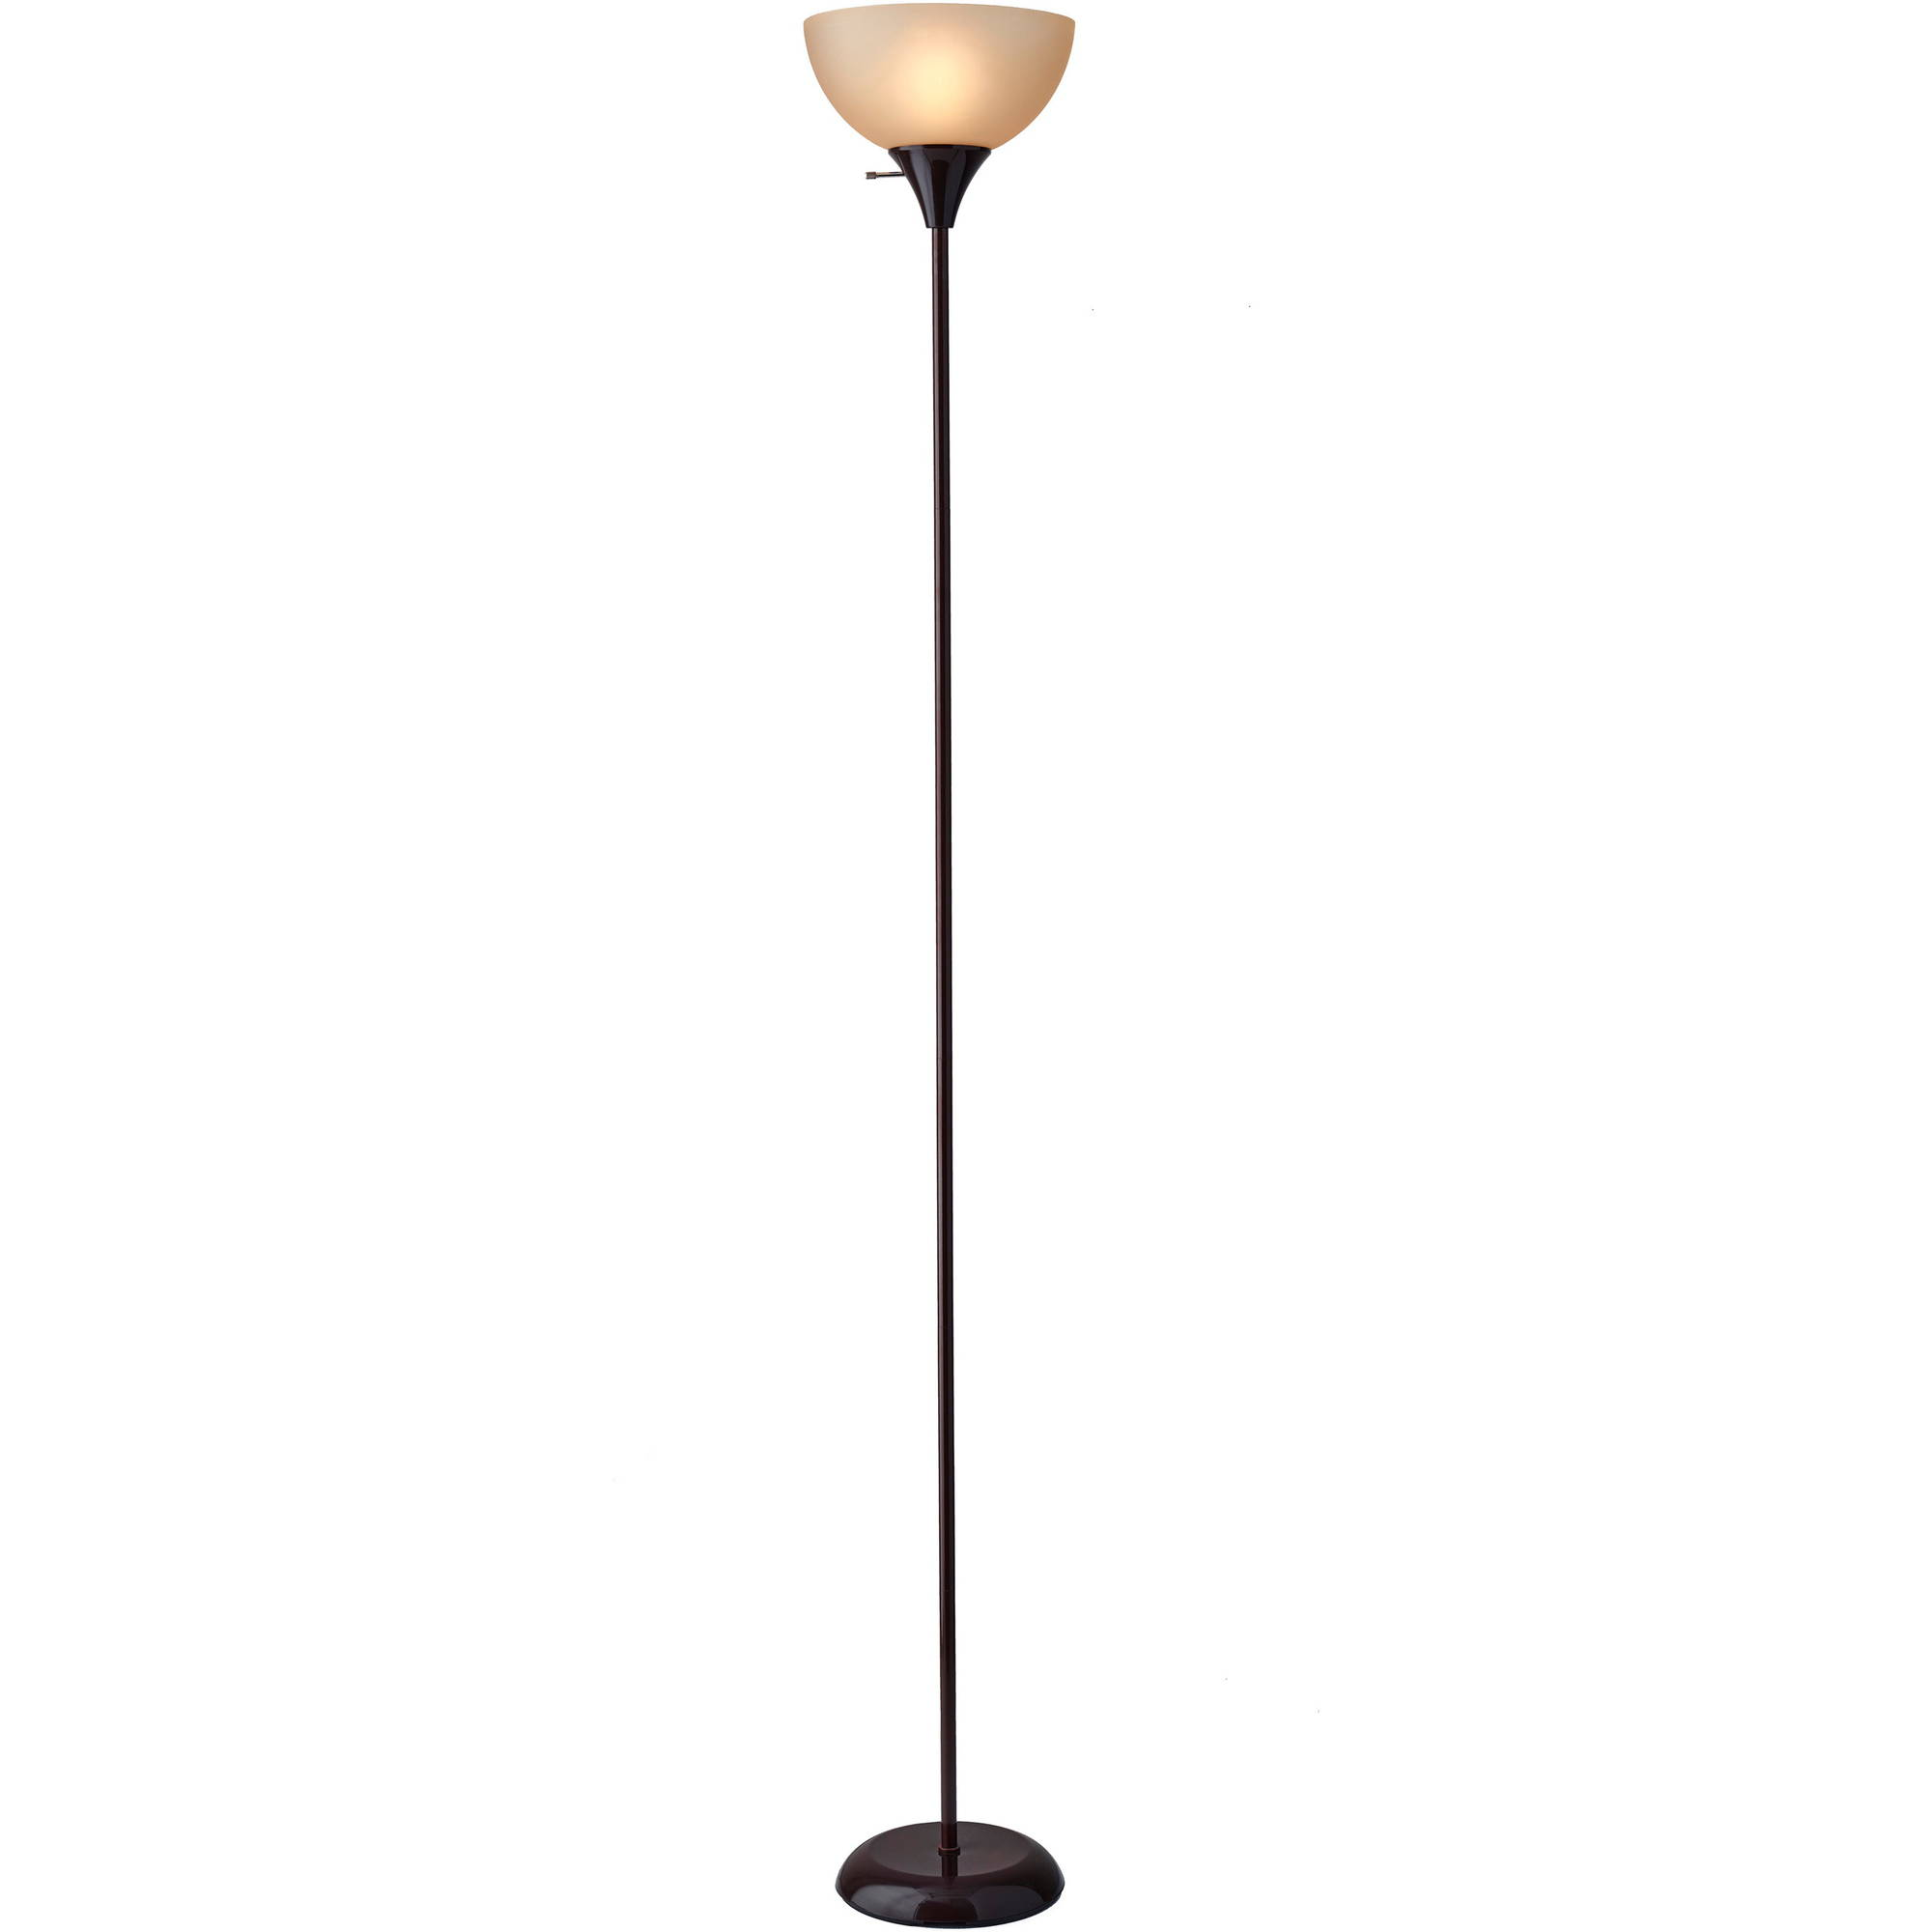 productdetail floor zoom one to light shaded htm uttermost bamboo quindici lamp metal hover